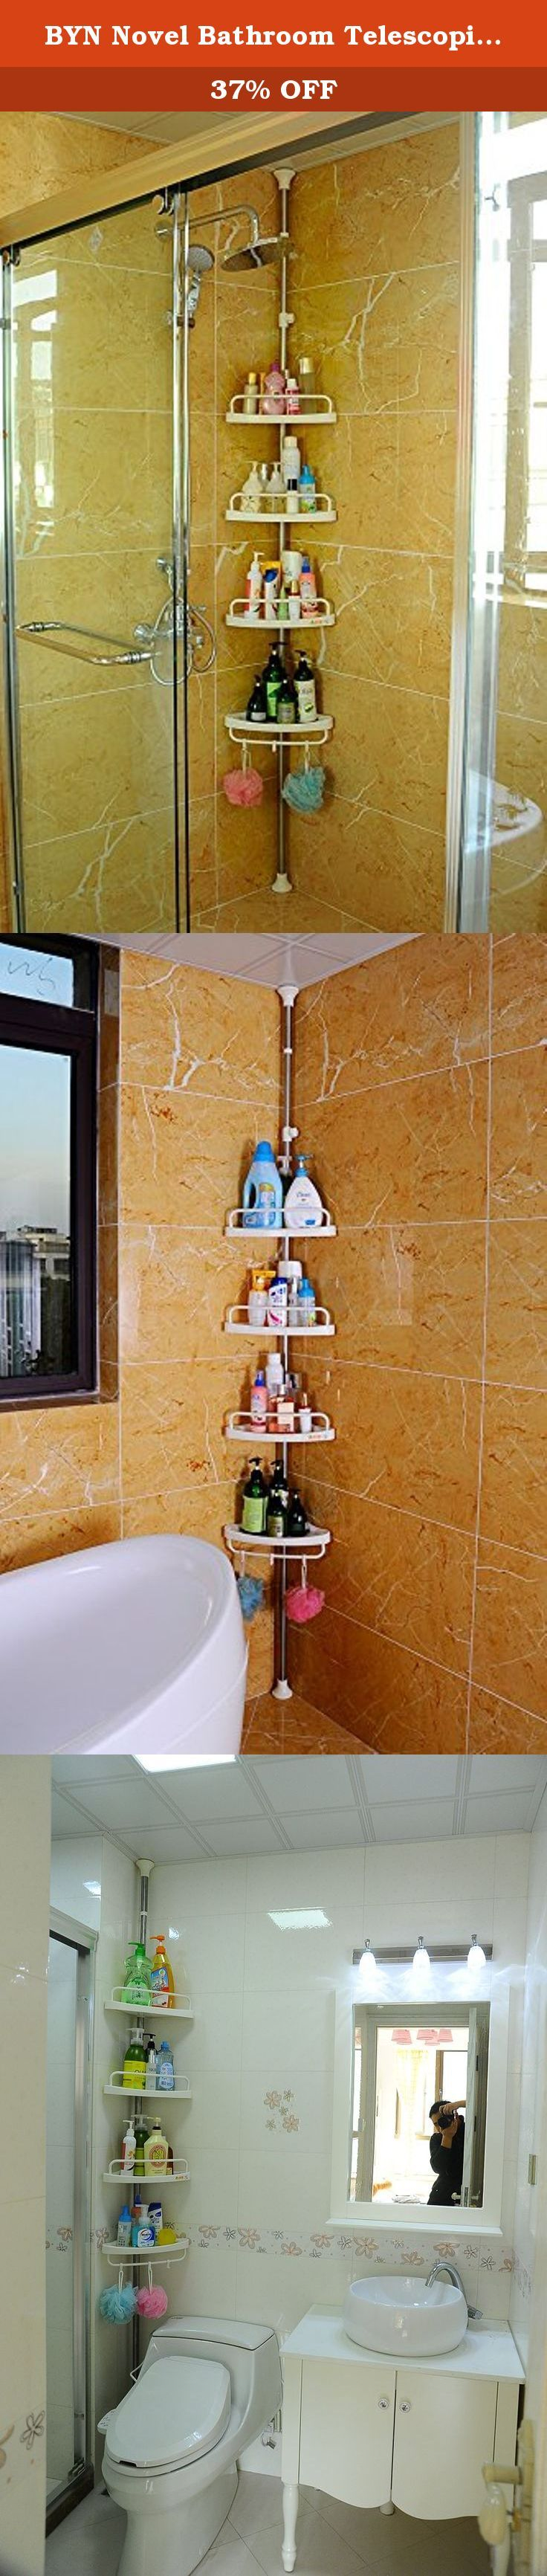 BYN Novel Bathroom Telescopic Tension Corner Pole Caddy Shower Organizer Caddy 601d. Please kindly note that the telescopic extendable height from 255 cm to 310 cm , remove bottom pipe ,its adjustable height is coming from 185 cm to 240 cm. If you have any question, please contact our customer service person EMAIL: sales09(at)shdongjin.com Product Description 1. Upright stand design, no tools, no drilling needed for assembling. 2. The height between each tray can be adjusted by rubber…